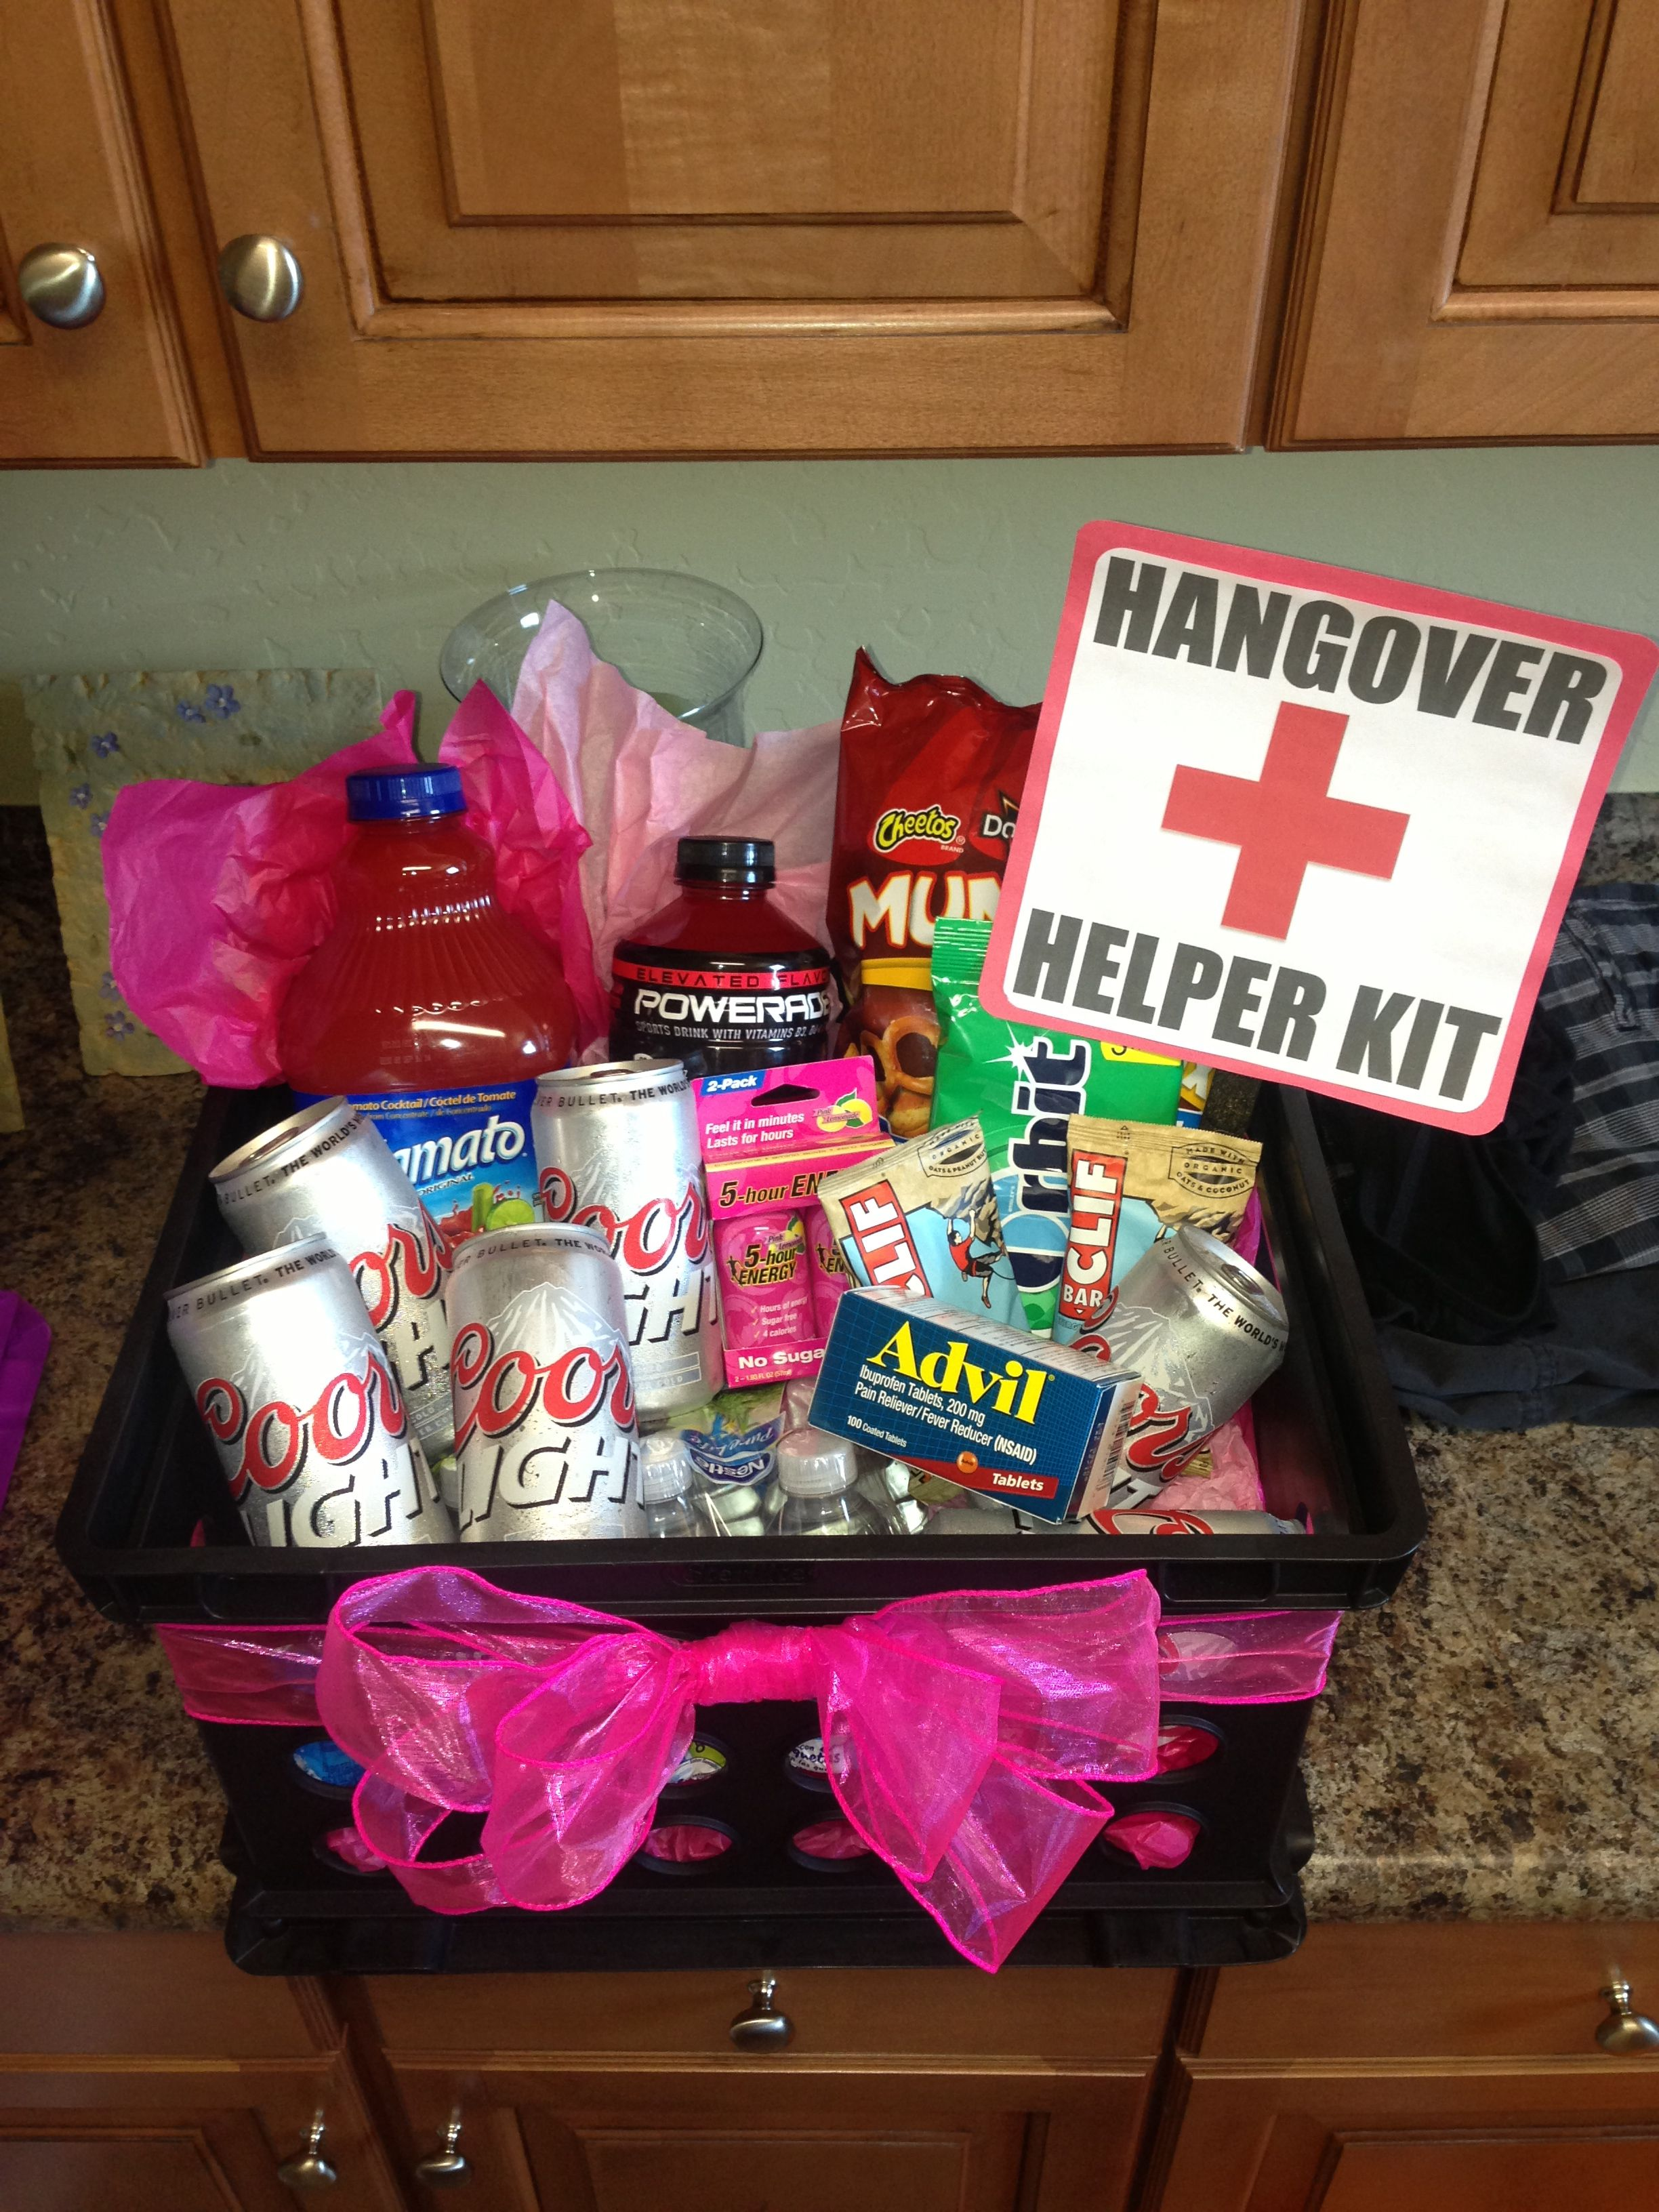 21st birthday hangover recovery kit 21st gifts